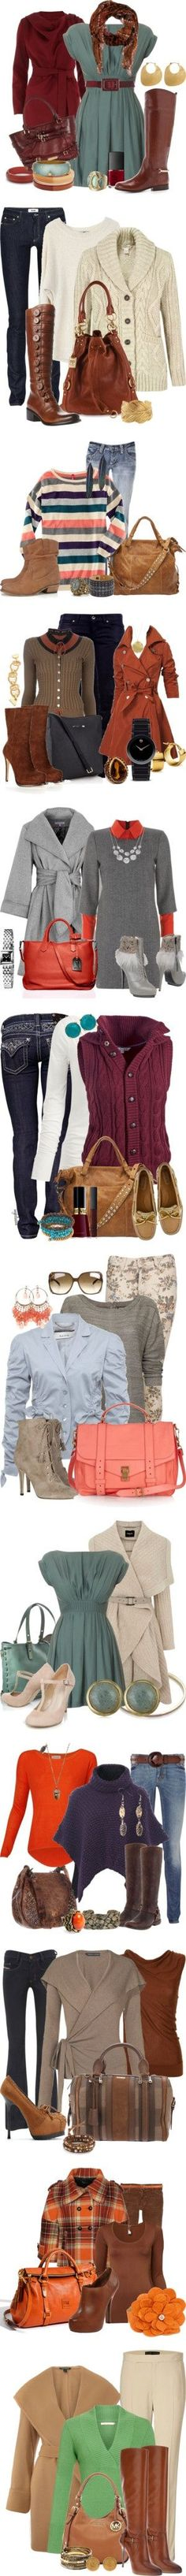 ✪✪✪ Stay up to date with all the latest fashion tips, discounts and the best places to shop online here => womensstyleguide.com ✪✪✪